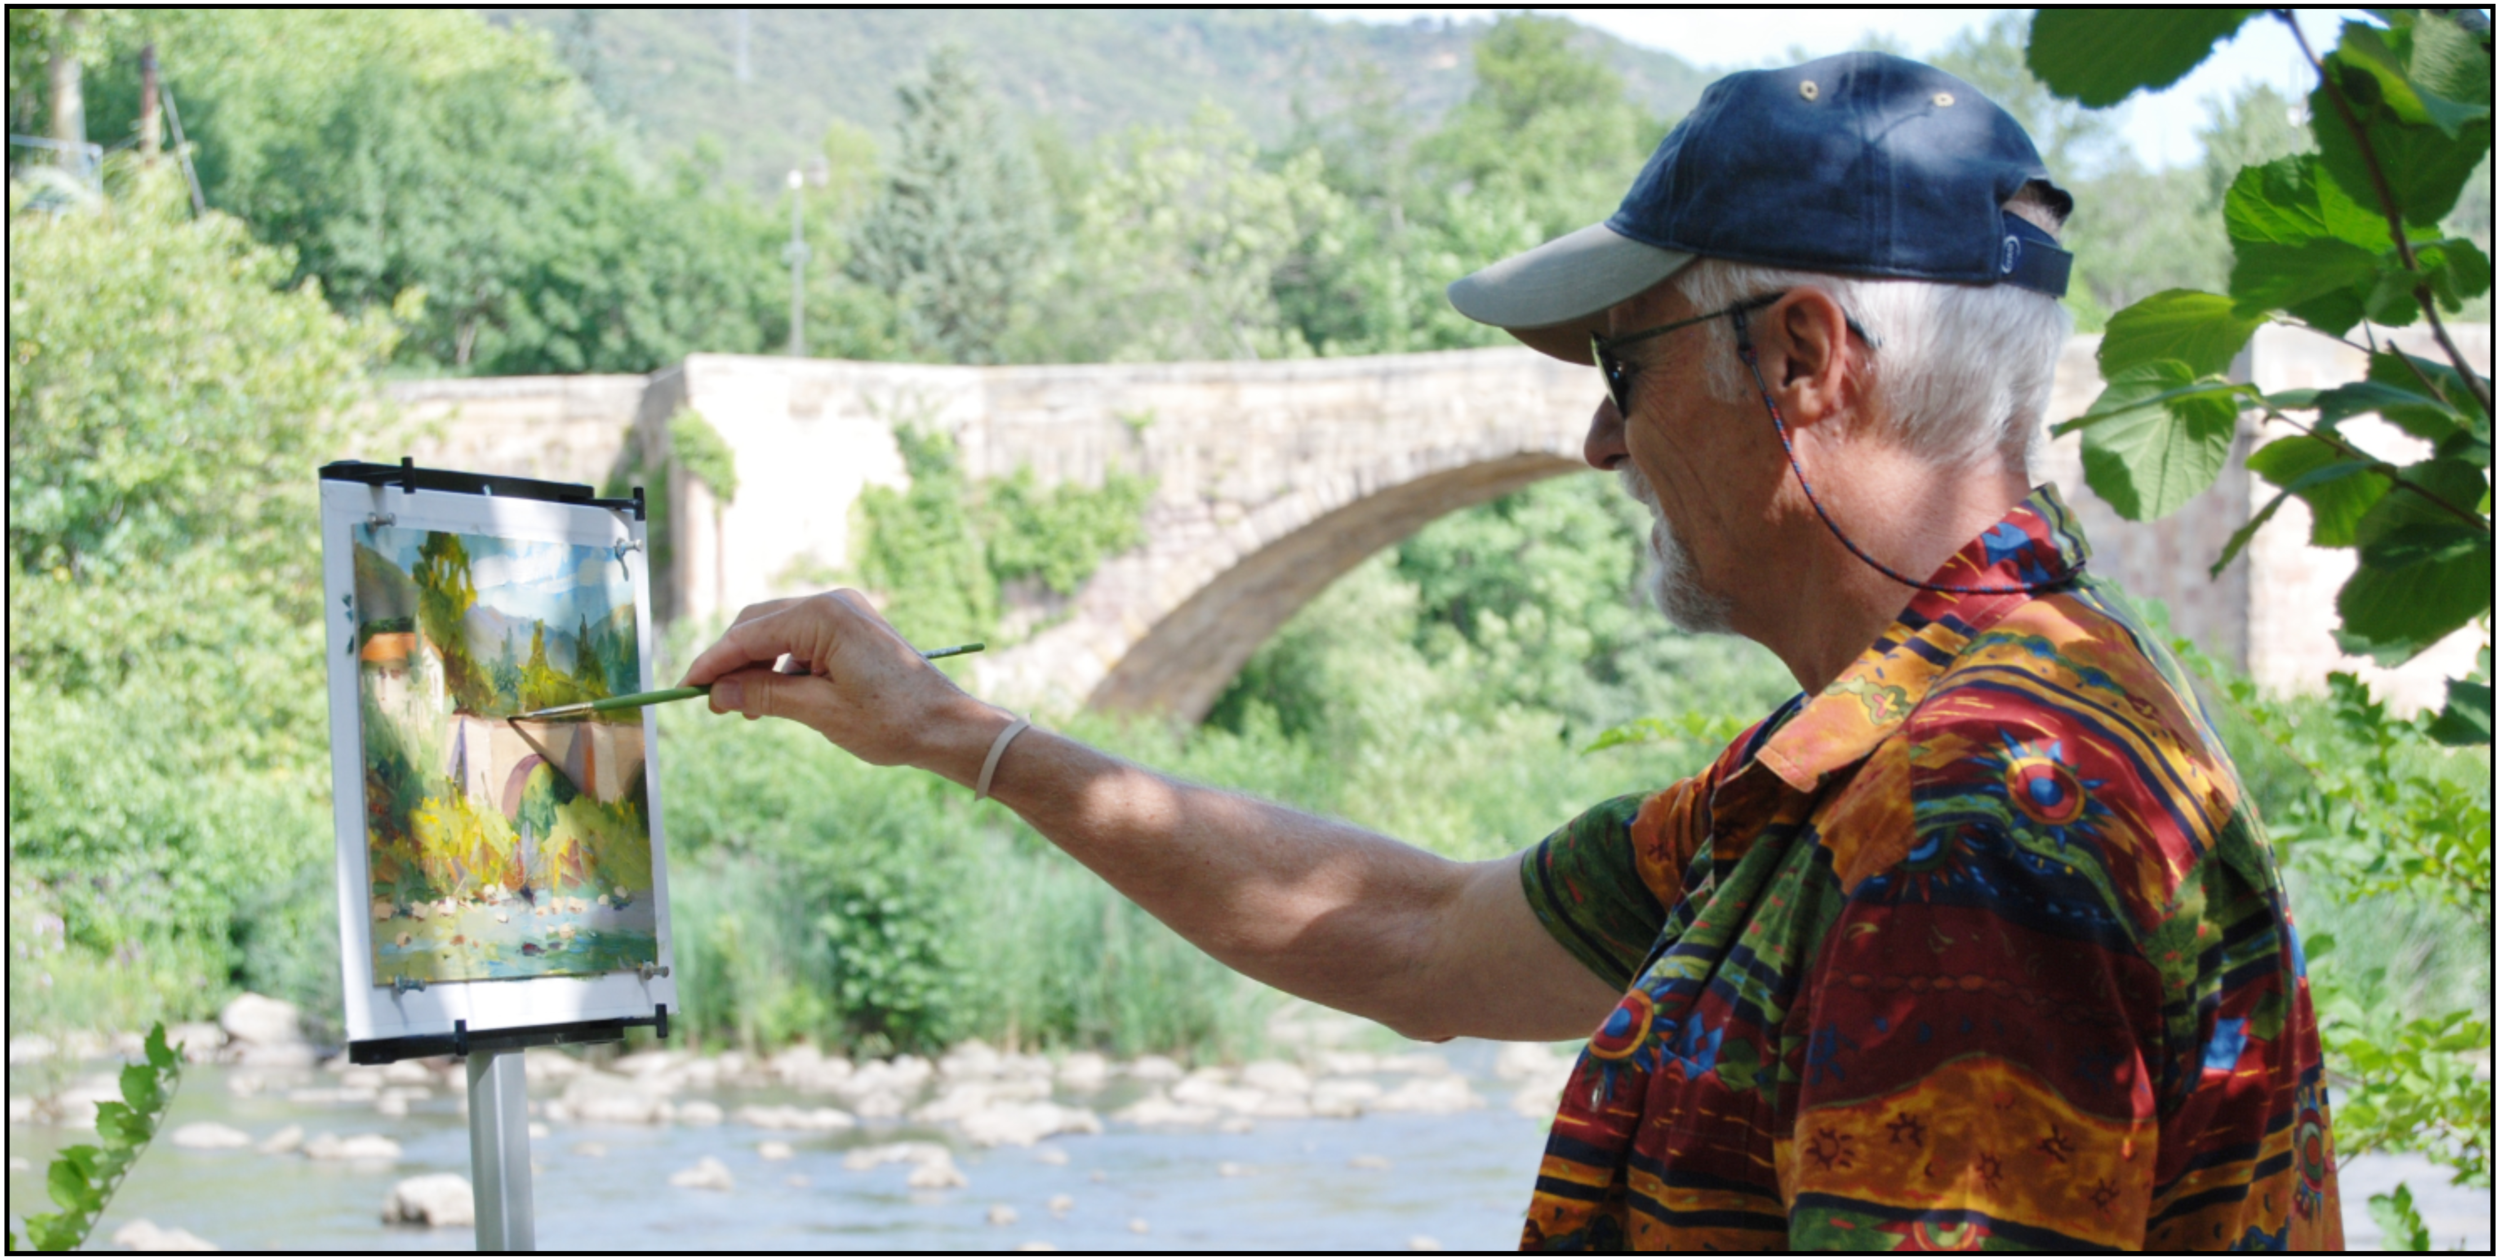 Our two week painting excursion in the South of France was both exhilarating and exhausting. Each day the eight of us would visit two villages. Leaving our base city of Limoux at eight a.m. and, most days, not return until six p.m.. The French people we encountered were most gracious and helpful.